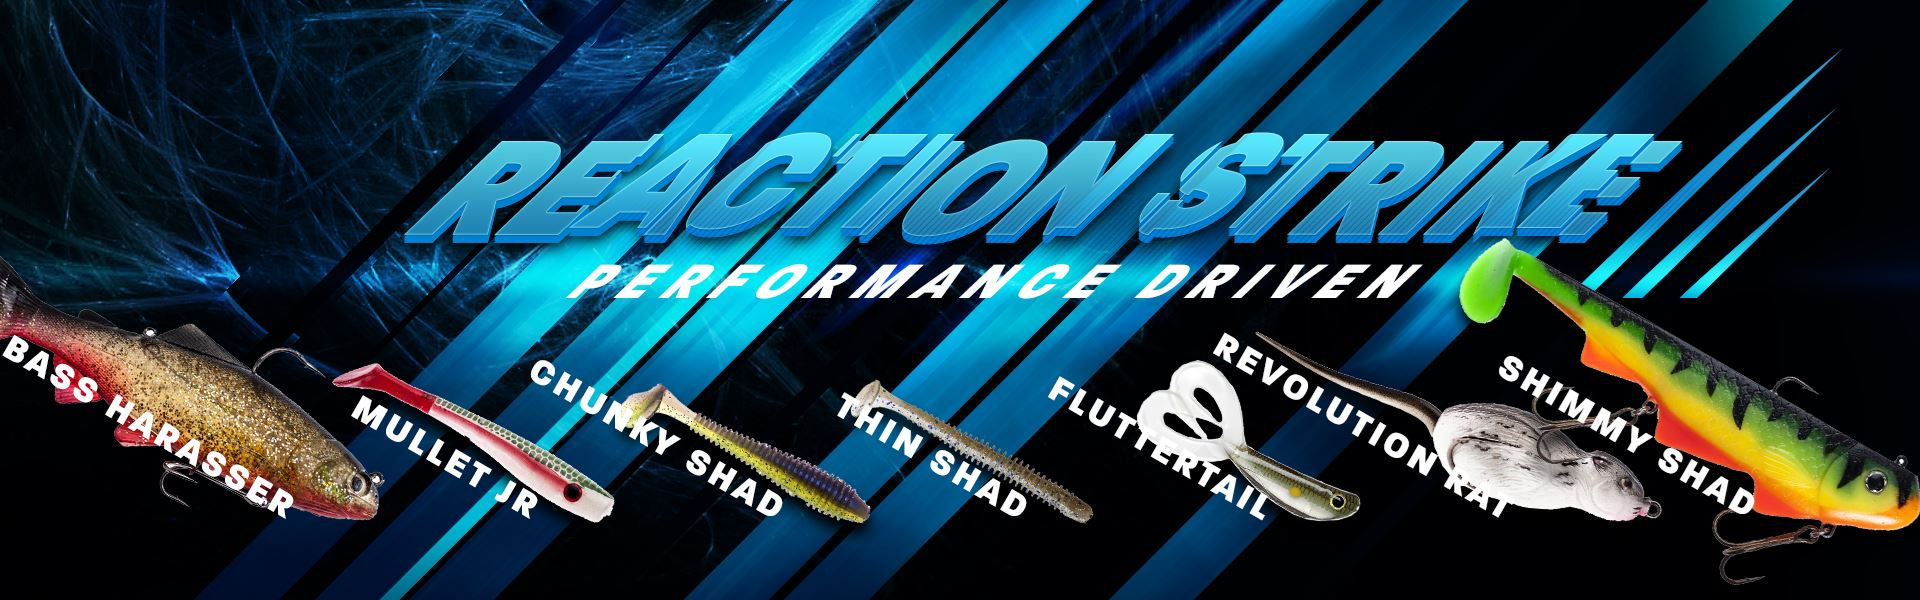 Reaction strike, xrm, spigola, luccio, bass, pesca a spinning, spinning, casting, bass fishing